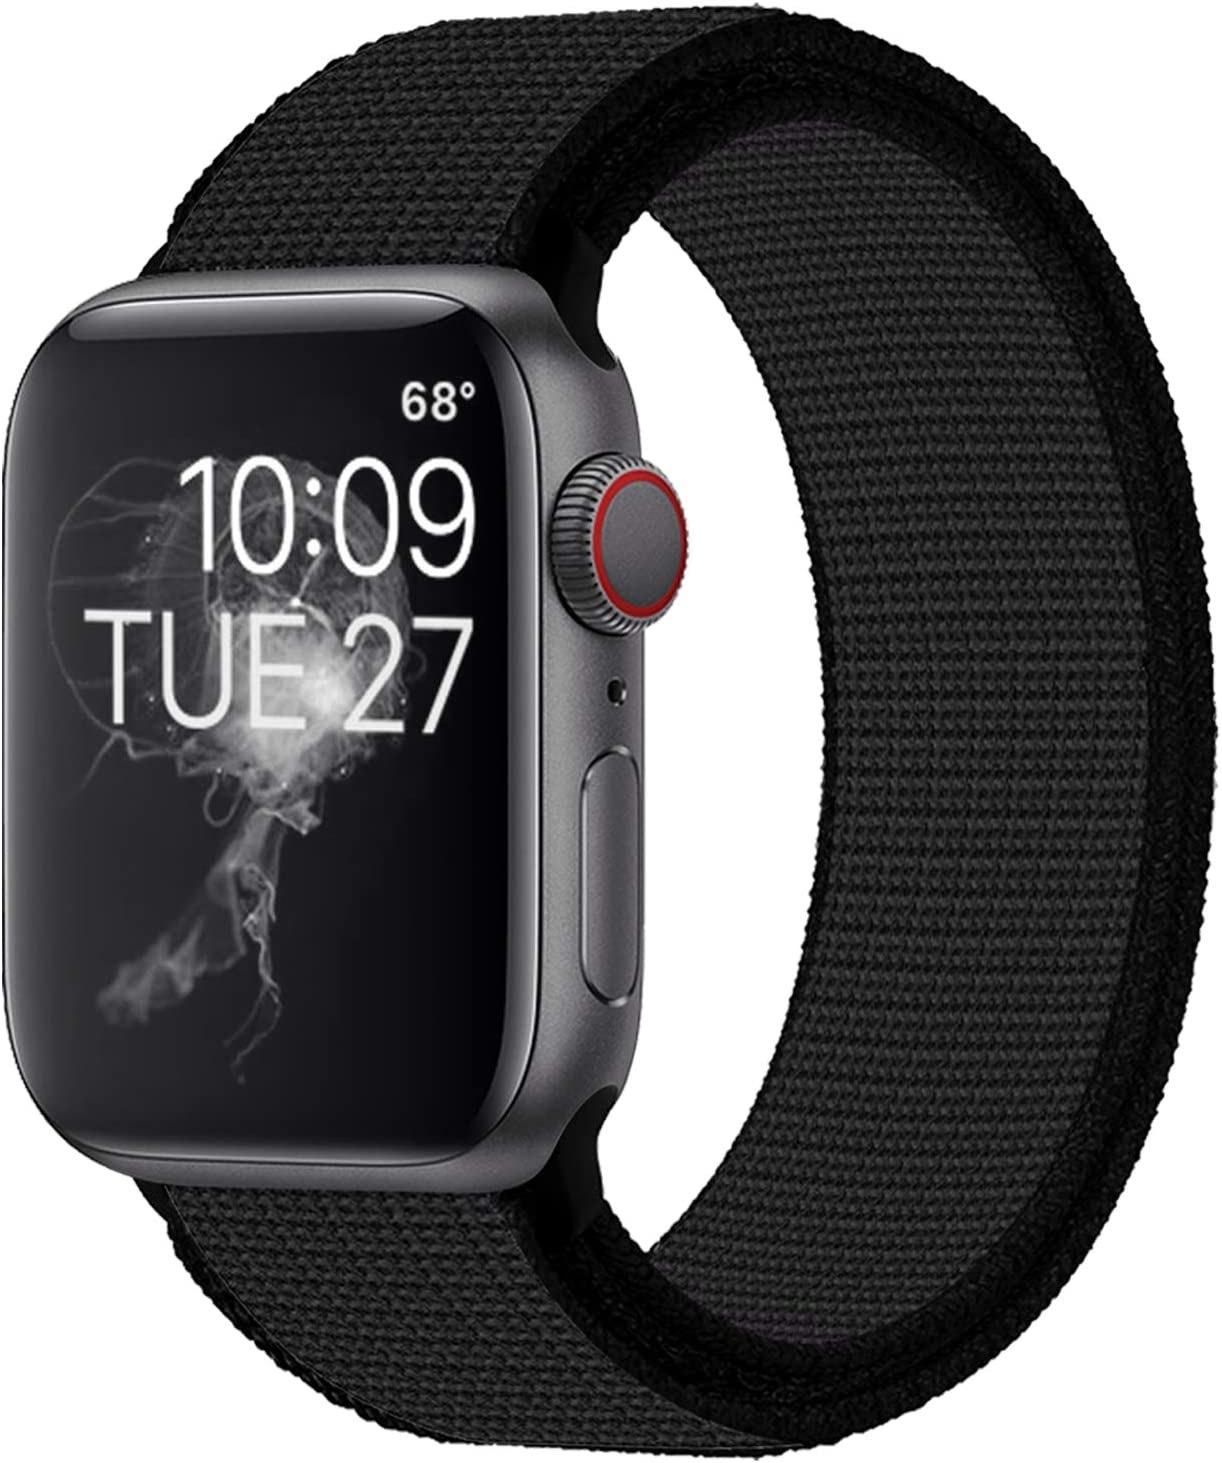 Band4u Compatible with for Apple Watch Band 38mm 40mm 42mm 44mm, Soft Adjustable Lightweight Replacement Wristbands Compatible with for iWatch Series 6 5 4 3 2 1 SE